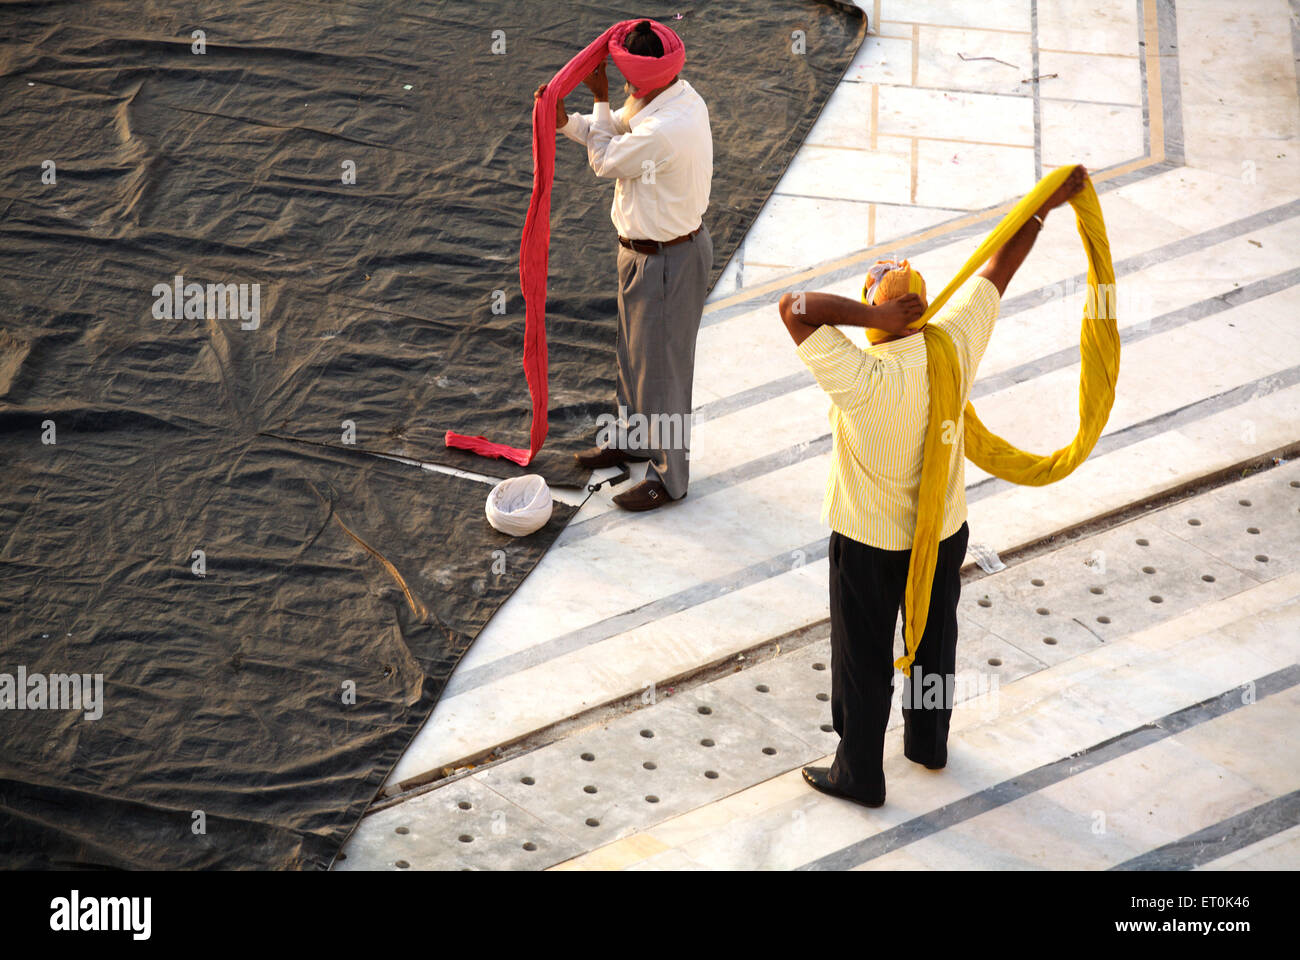 Sikh devotees tying their Pag or head gear in the compound of Sachkhand Saheb Gurudwara in Nanded ; Maharashtra - Stock Image